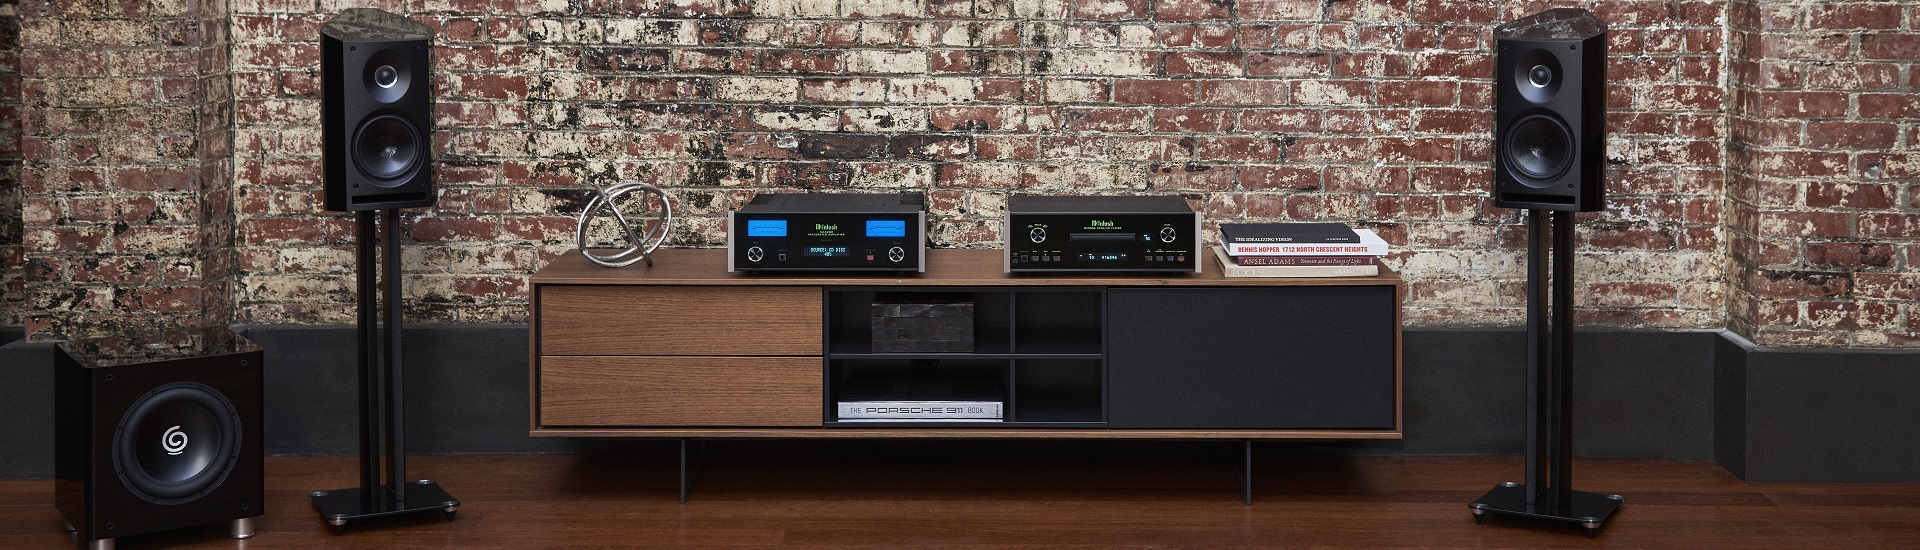 McIntosh MA5200 Integrated Amplifier Product Review